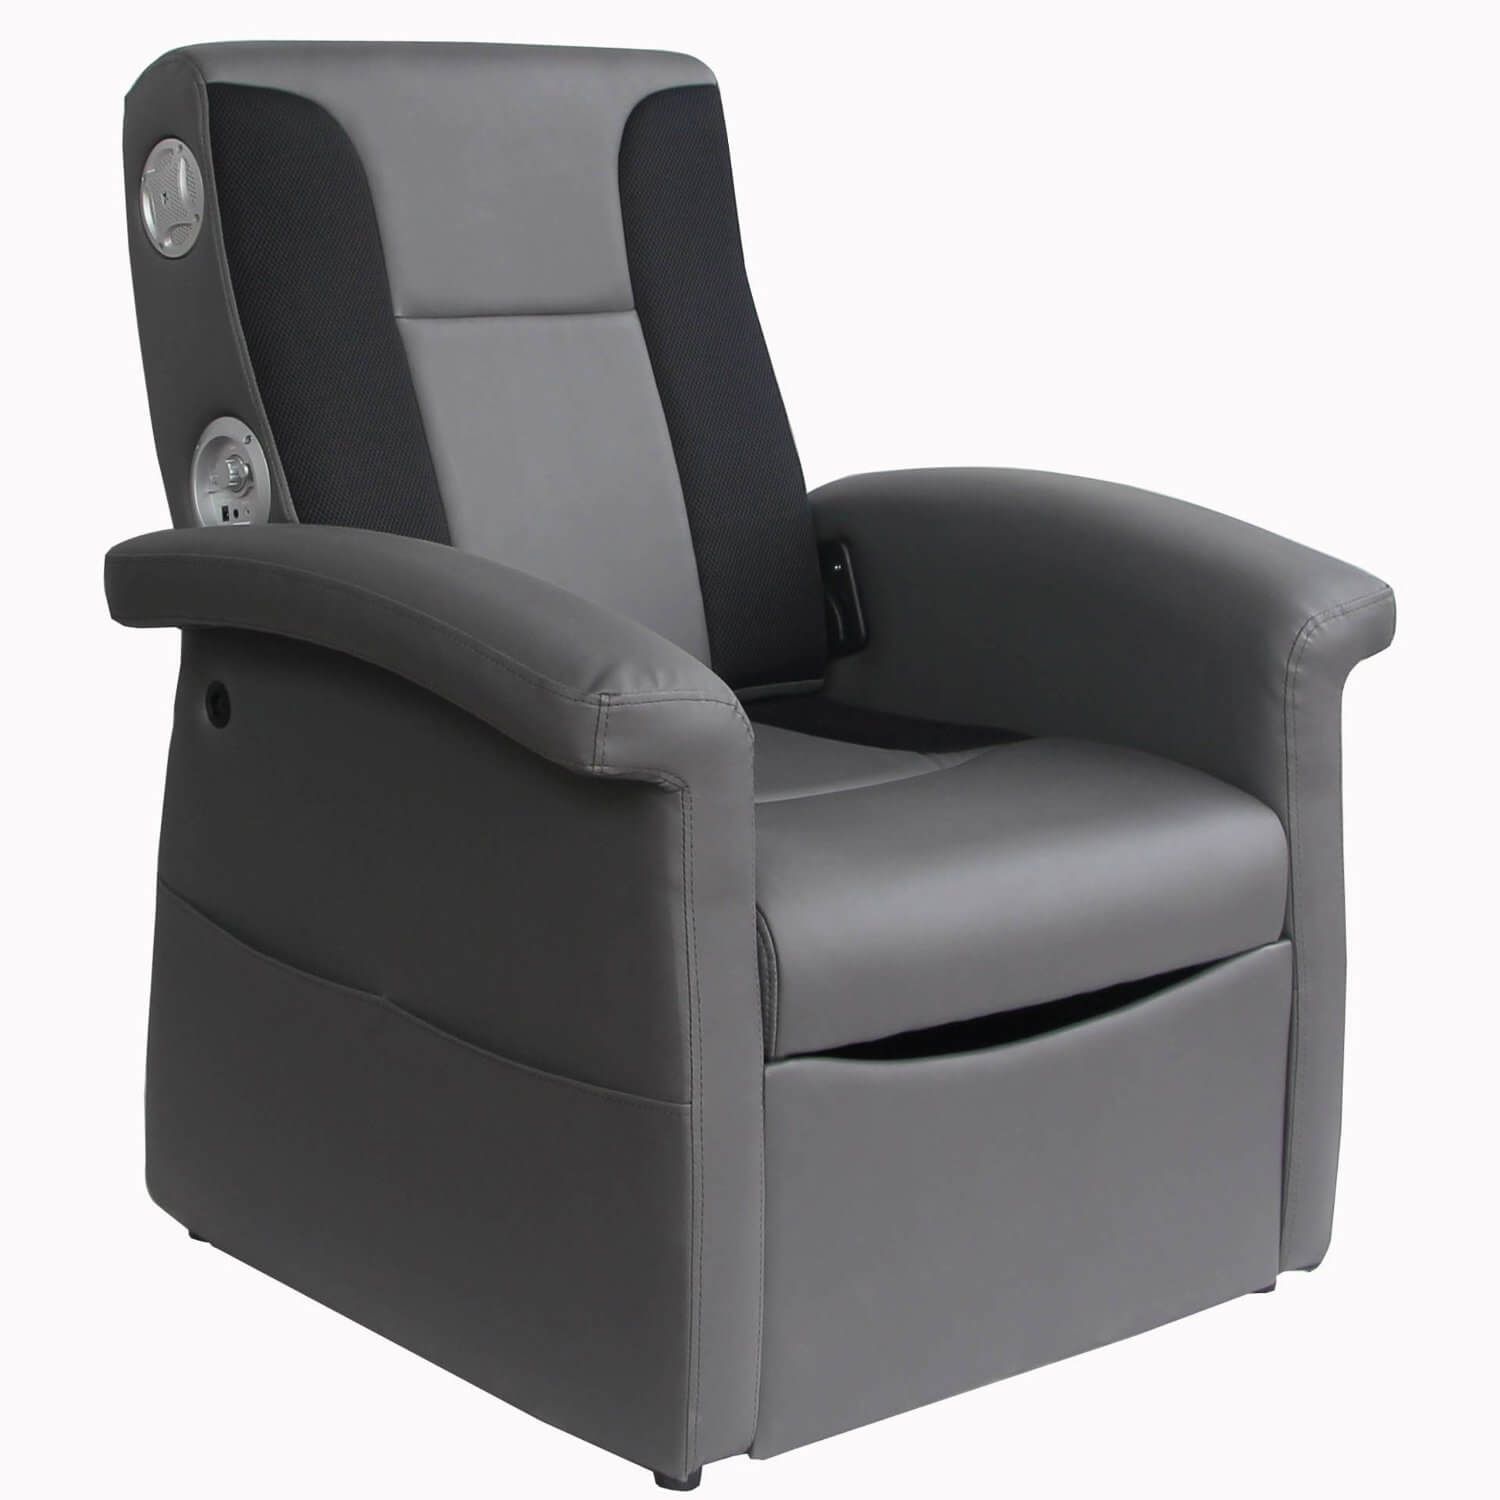 Video Games Chair Best Gaming Chairs For Adults The Top Chair Reviews 2018